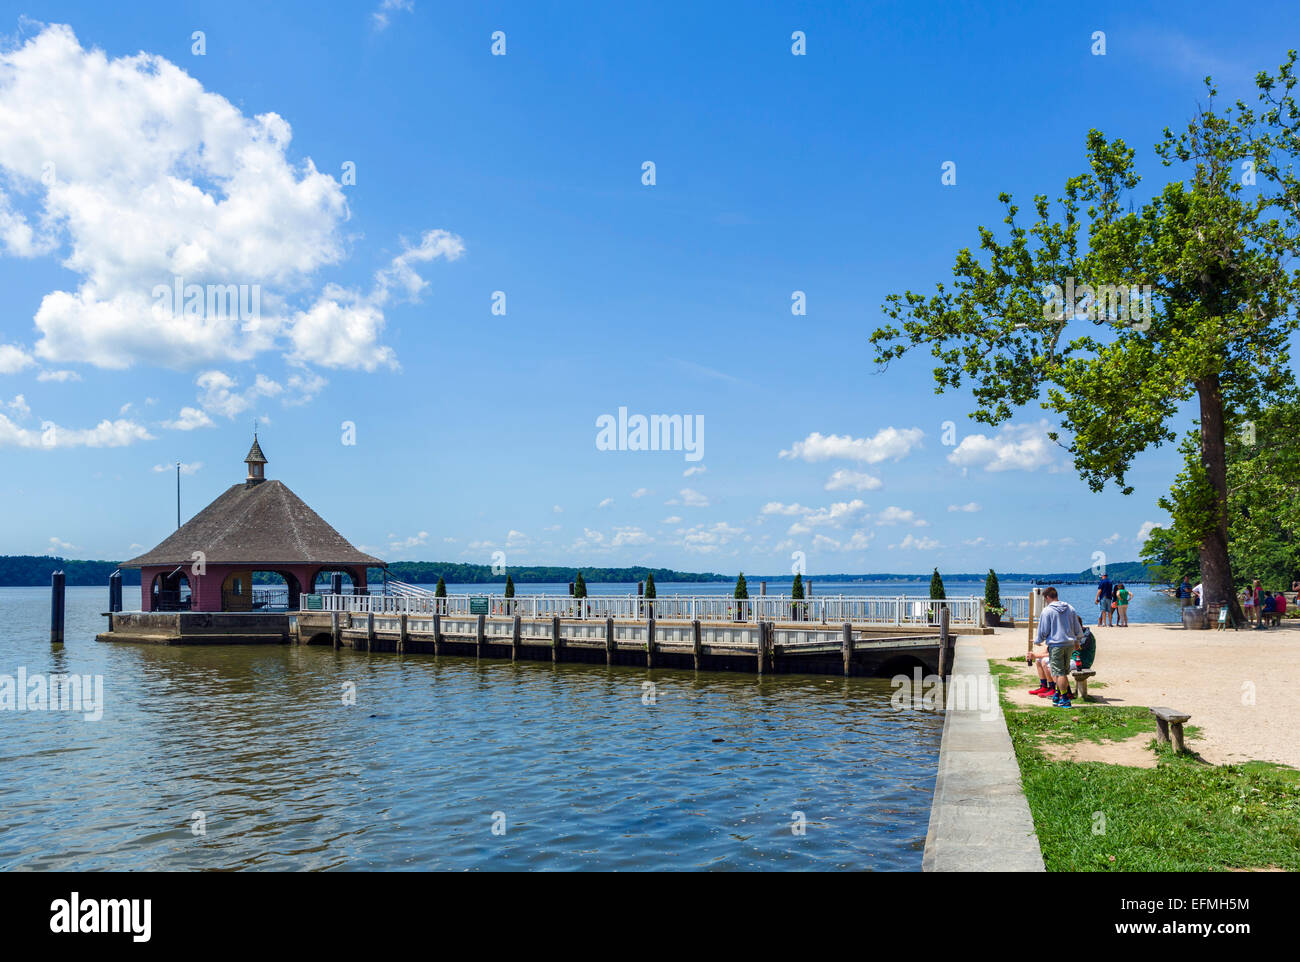 The Wharf on the riverfront at President George Washington's plantation mansion at Mount Vernon, Fairfax County, - Stock Image